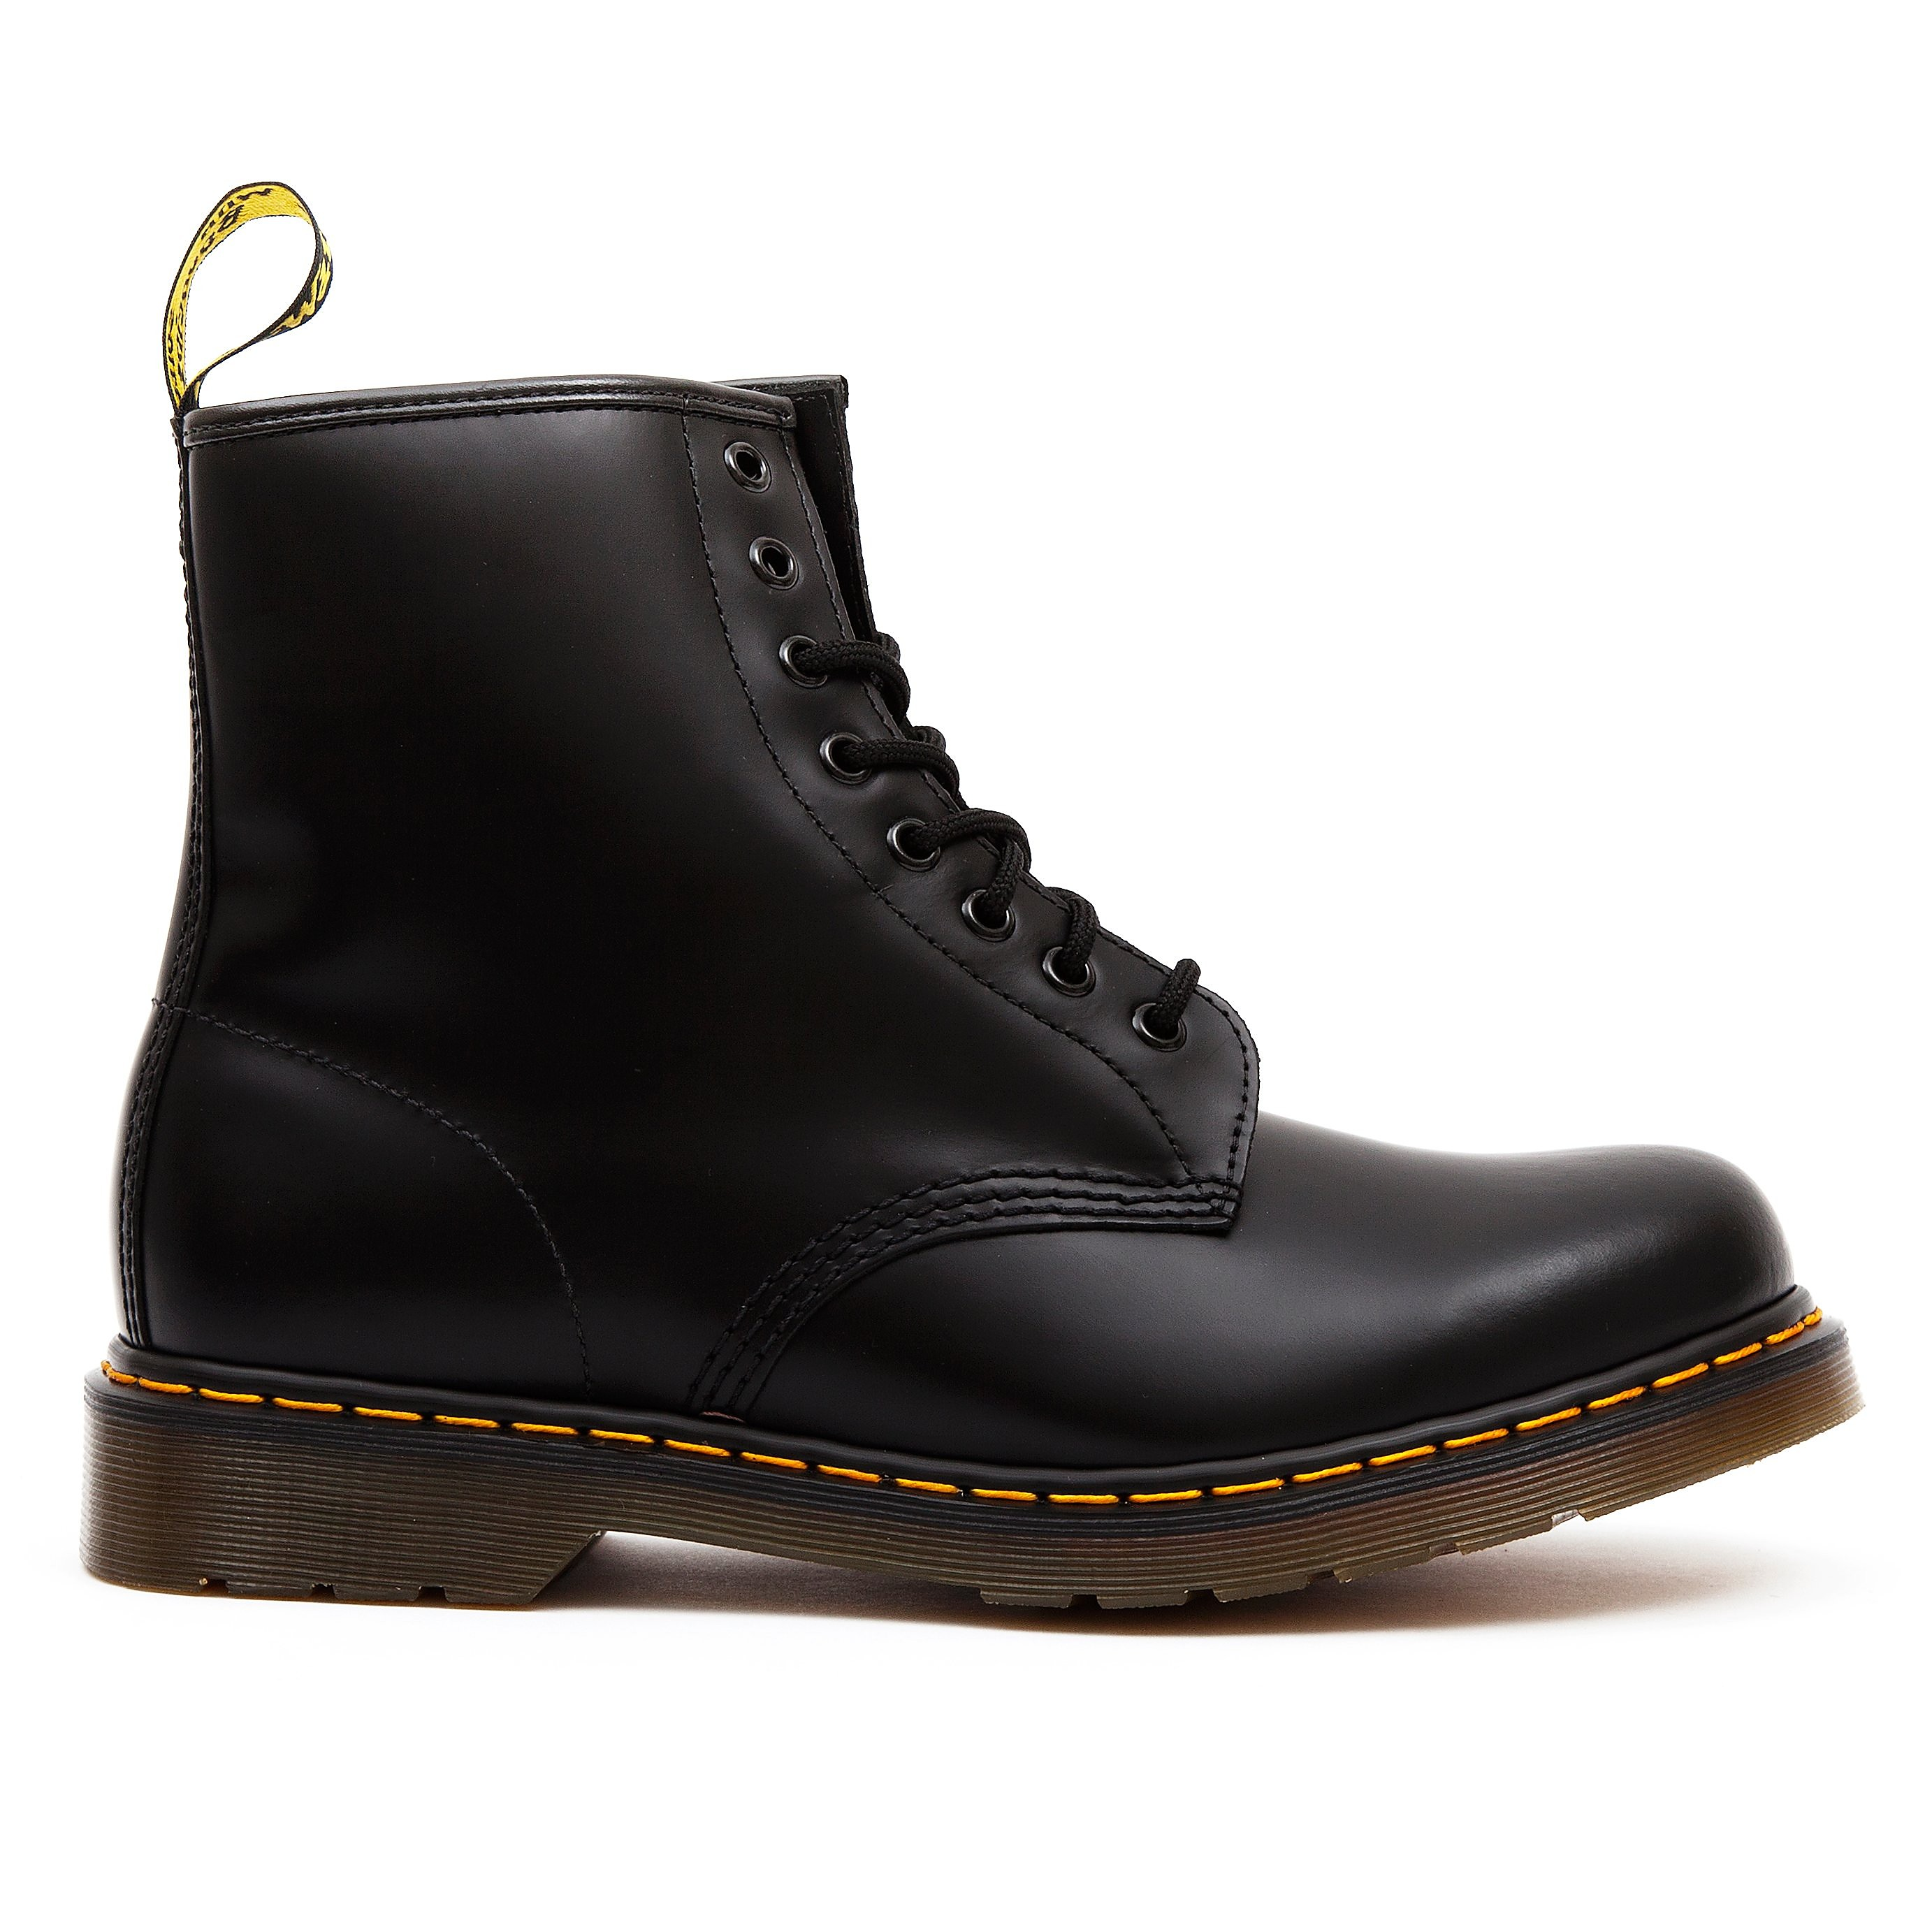 Dr Martens 1460 Womens Black